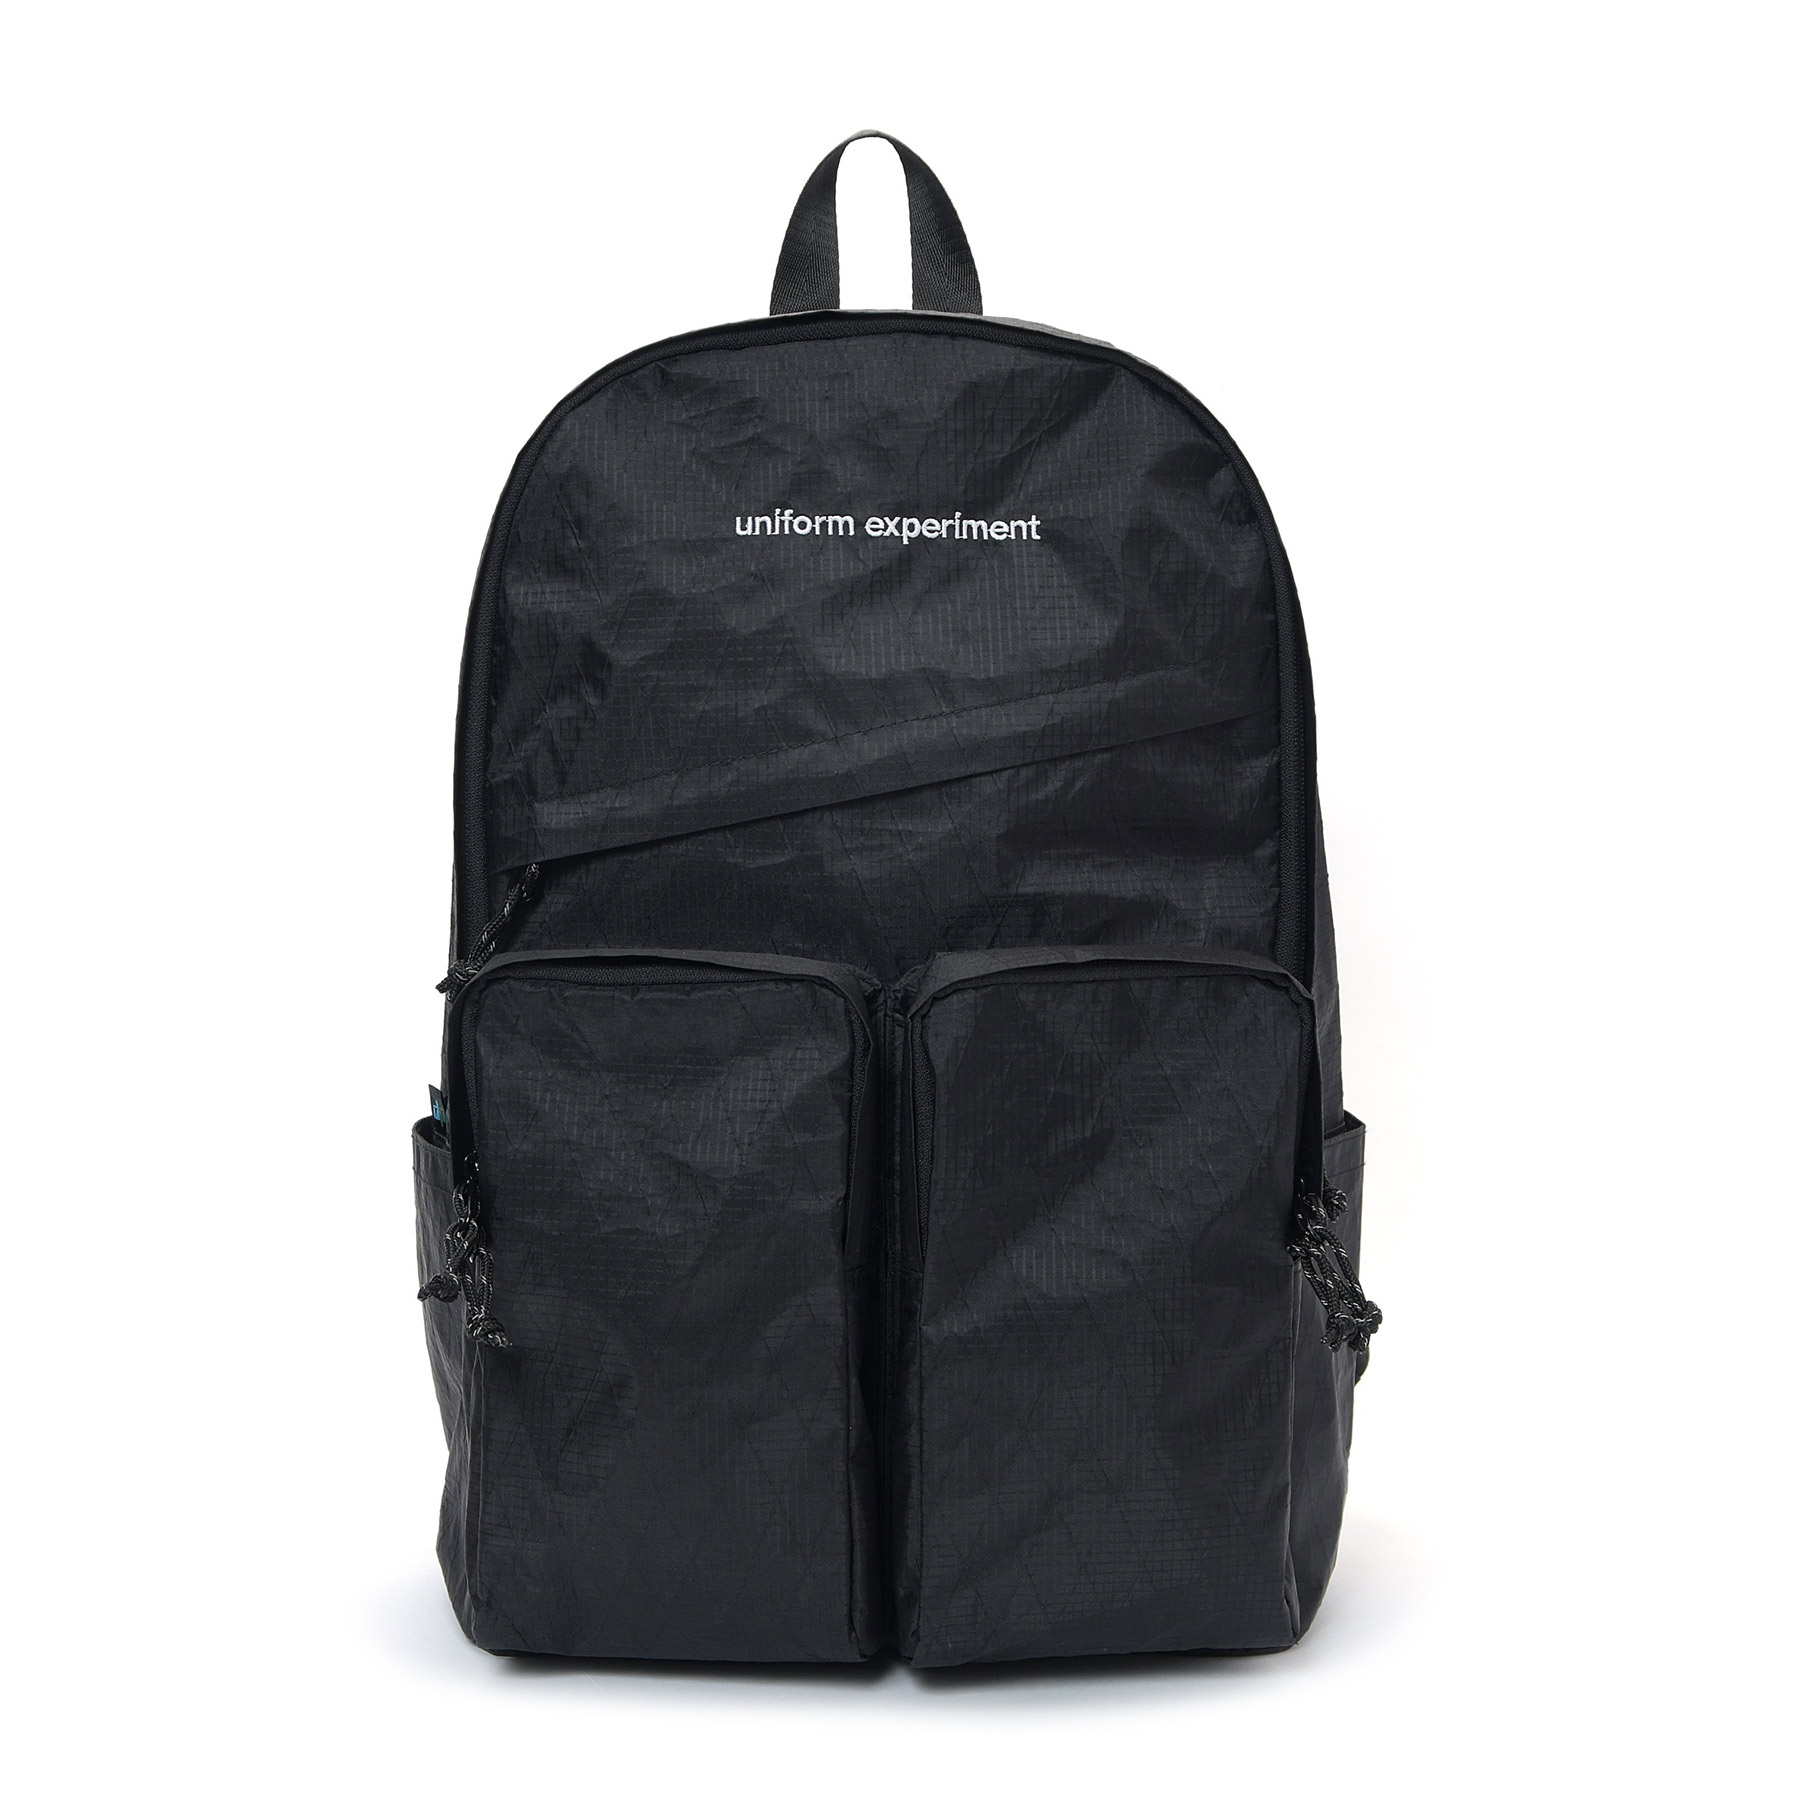 uniform experiment / BACK PACK -Black